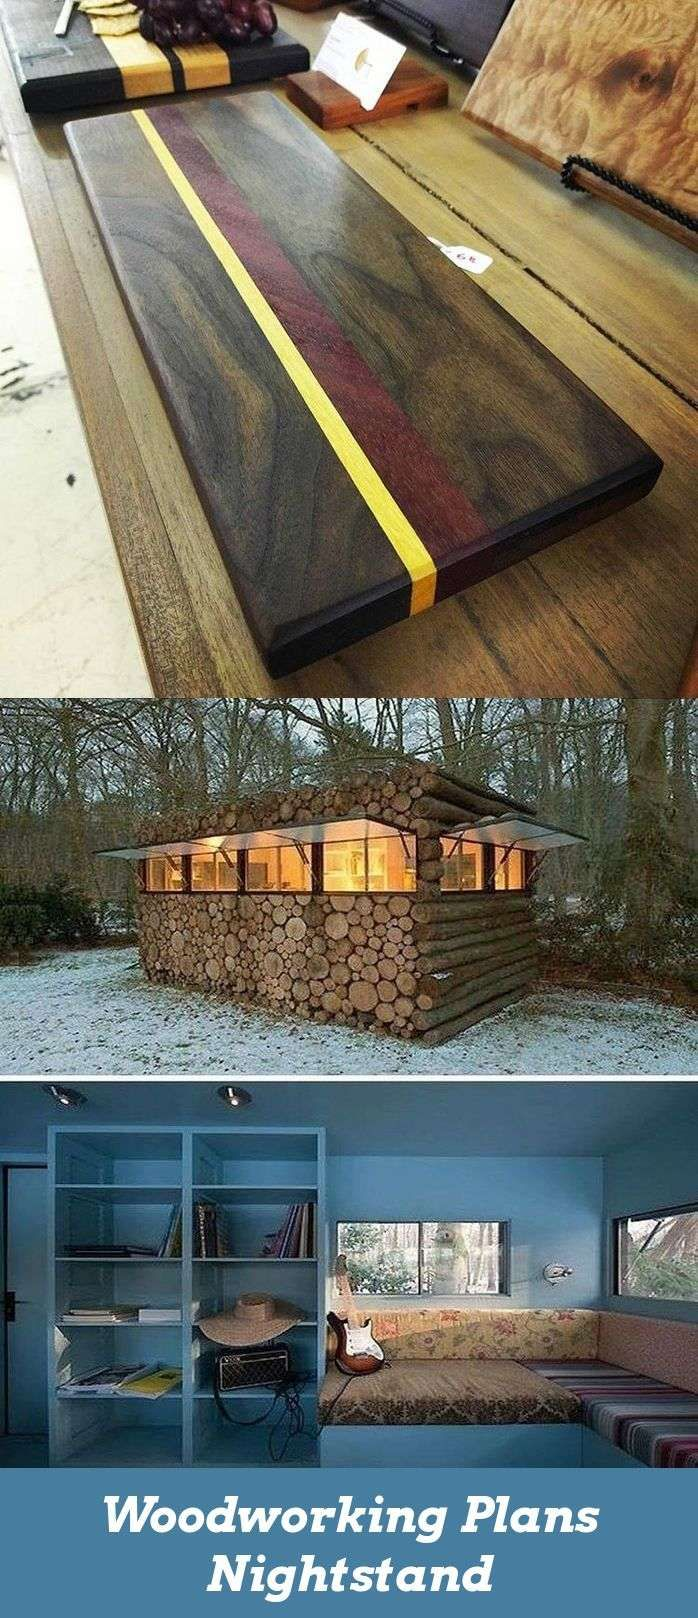 teds woodworking projects review | wood projects diy yards